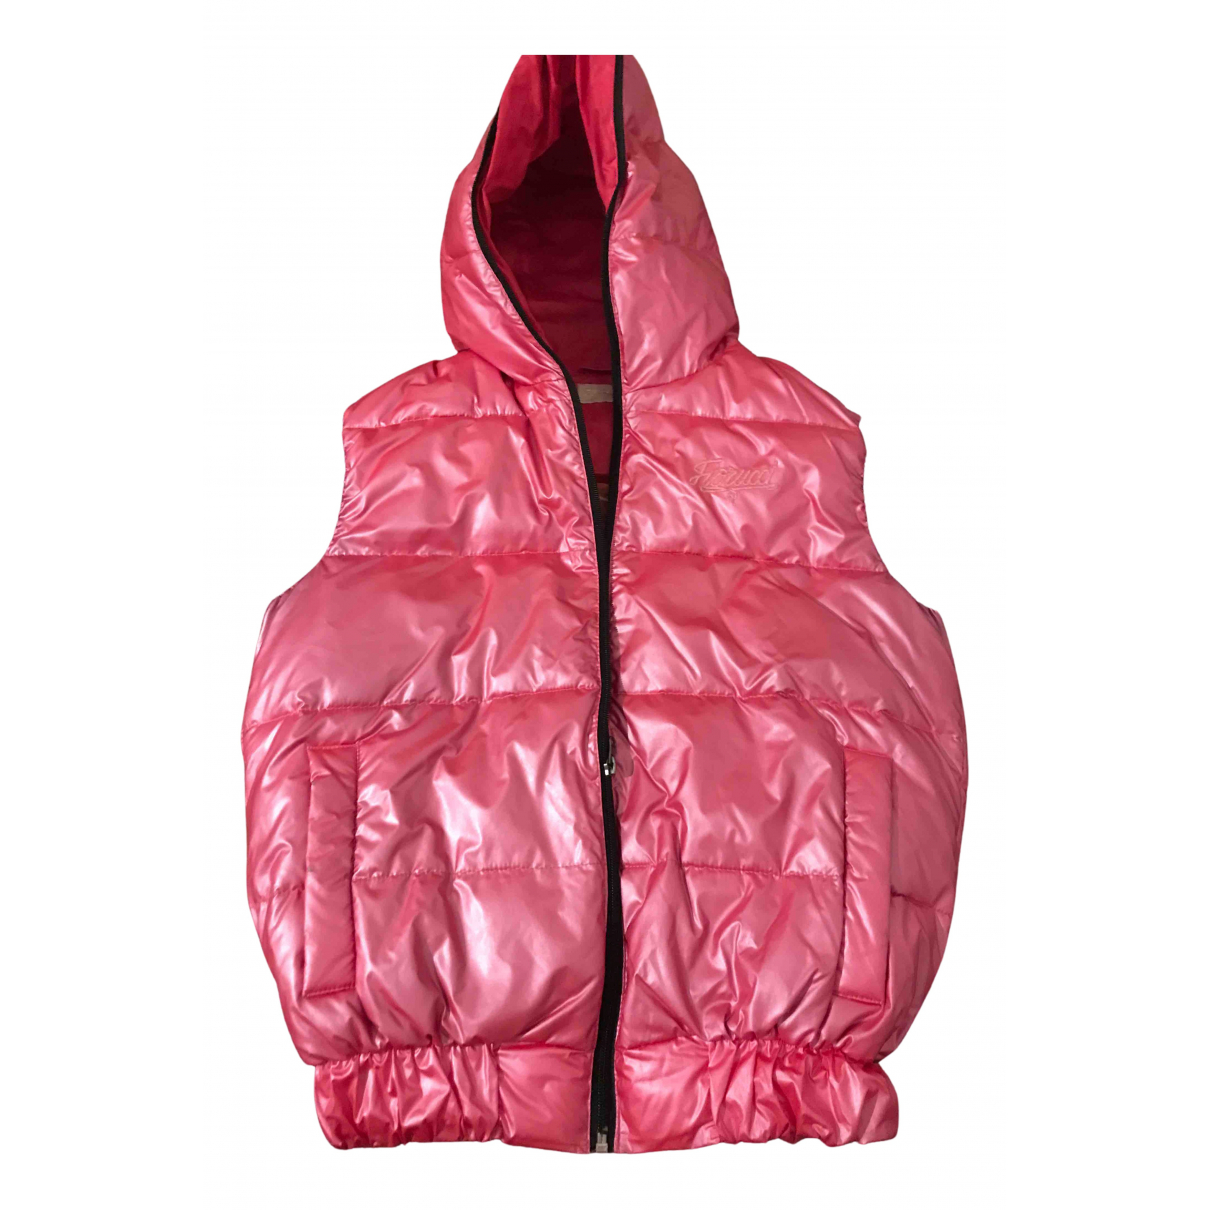 Fiorucci N Pink jacket & coat for Kids 14 years - S FR